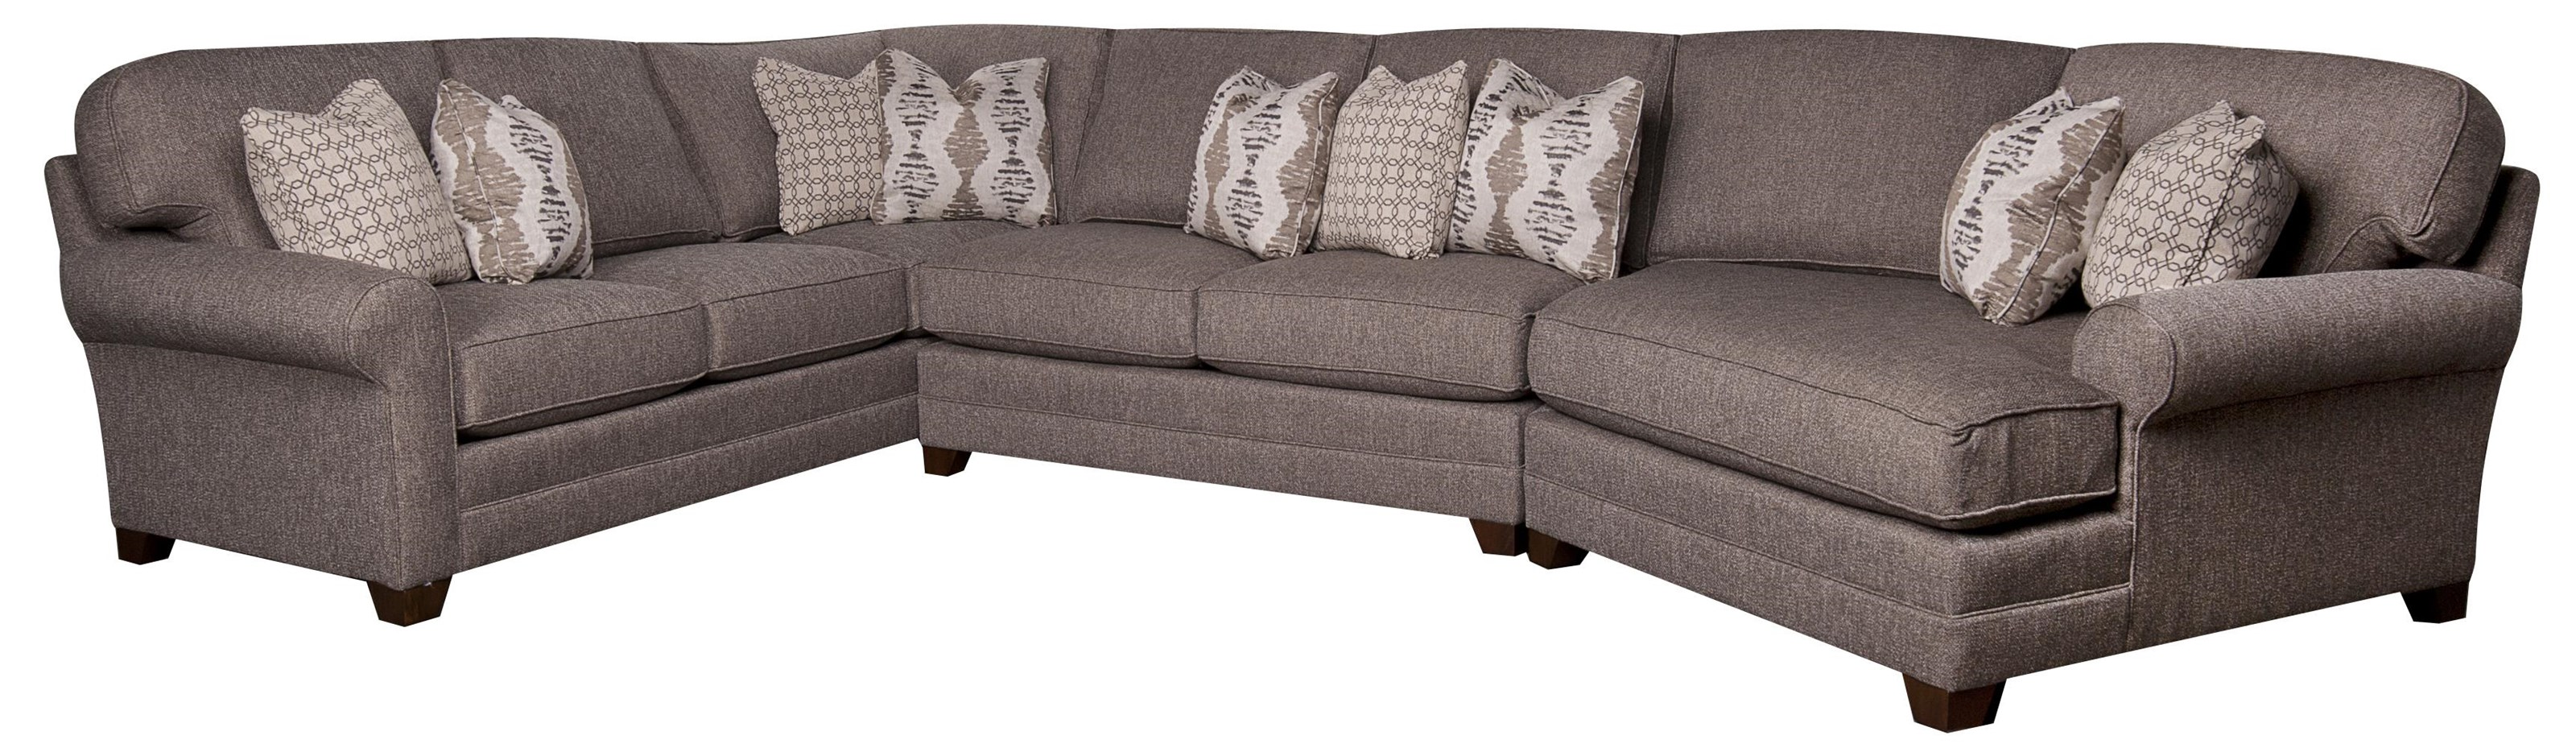 Biltmore Mcgraw Mcgraw 3-Piece Sectional - Item Number: 386028122